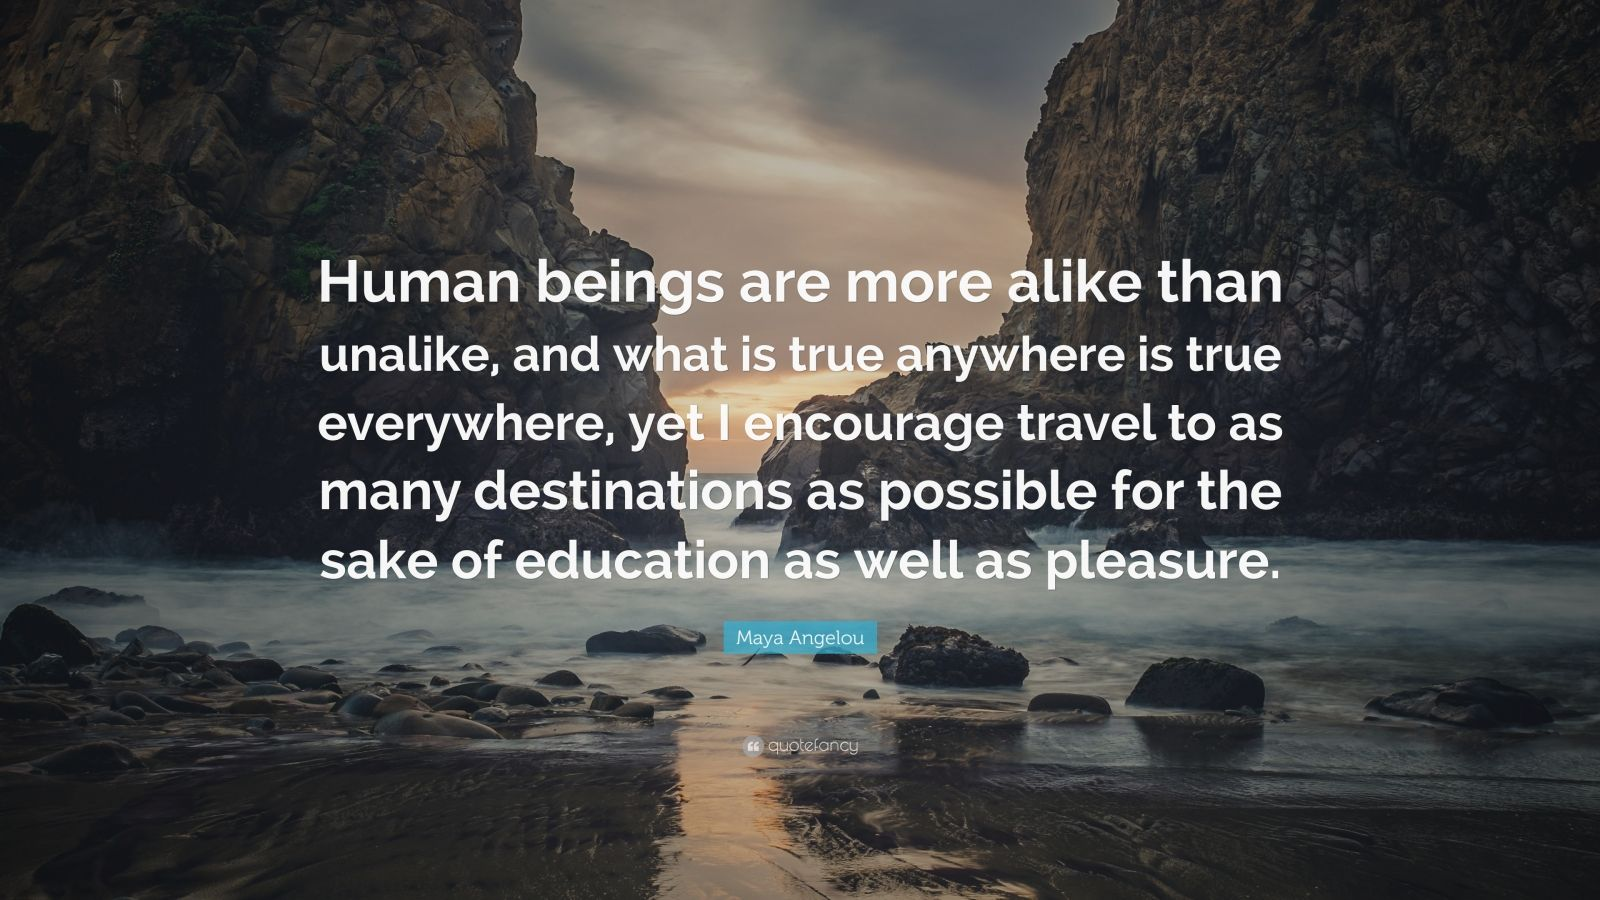 """Maya Angelou Quote: """"Human beings are more alike than unalike, and what is true anywhere is true everywhere, yet I encourage travel to as many destinations as possible for the sake of education as well as pleasure."""""""